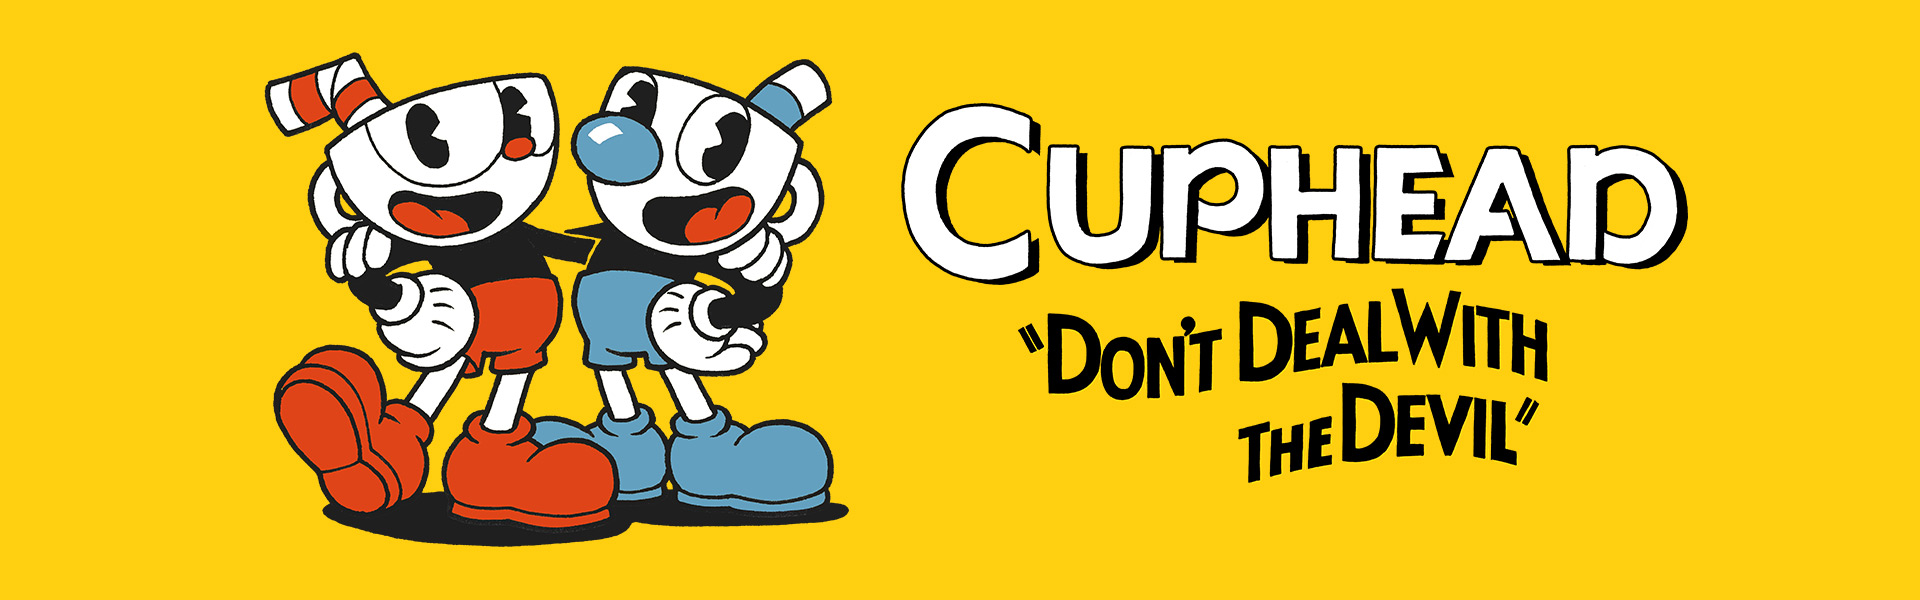 Cuphead, Don't Deal with the Devil, os personagens Cuphead, Mugman e Ms. Chalice posando